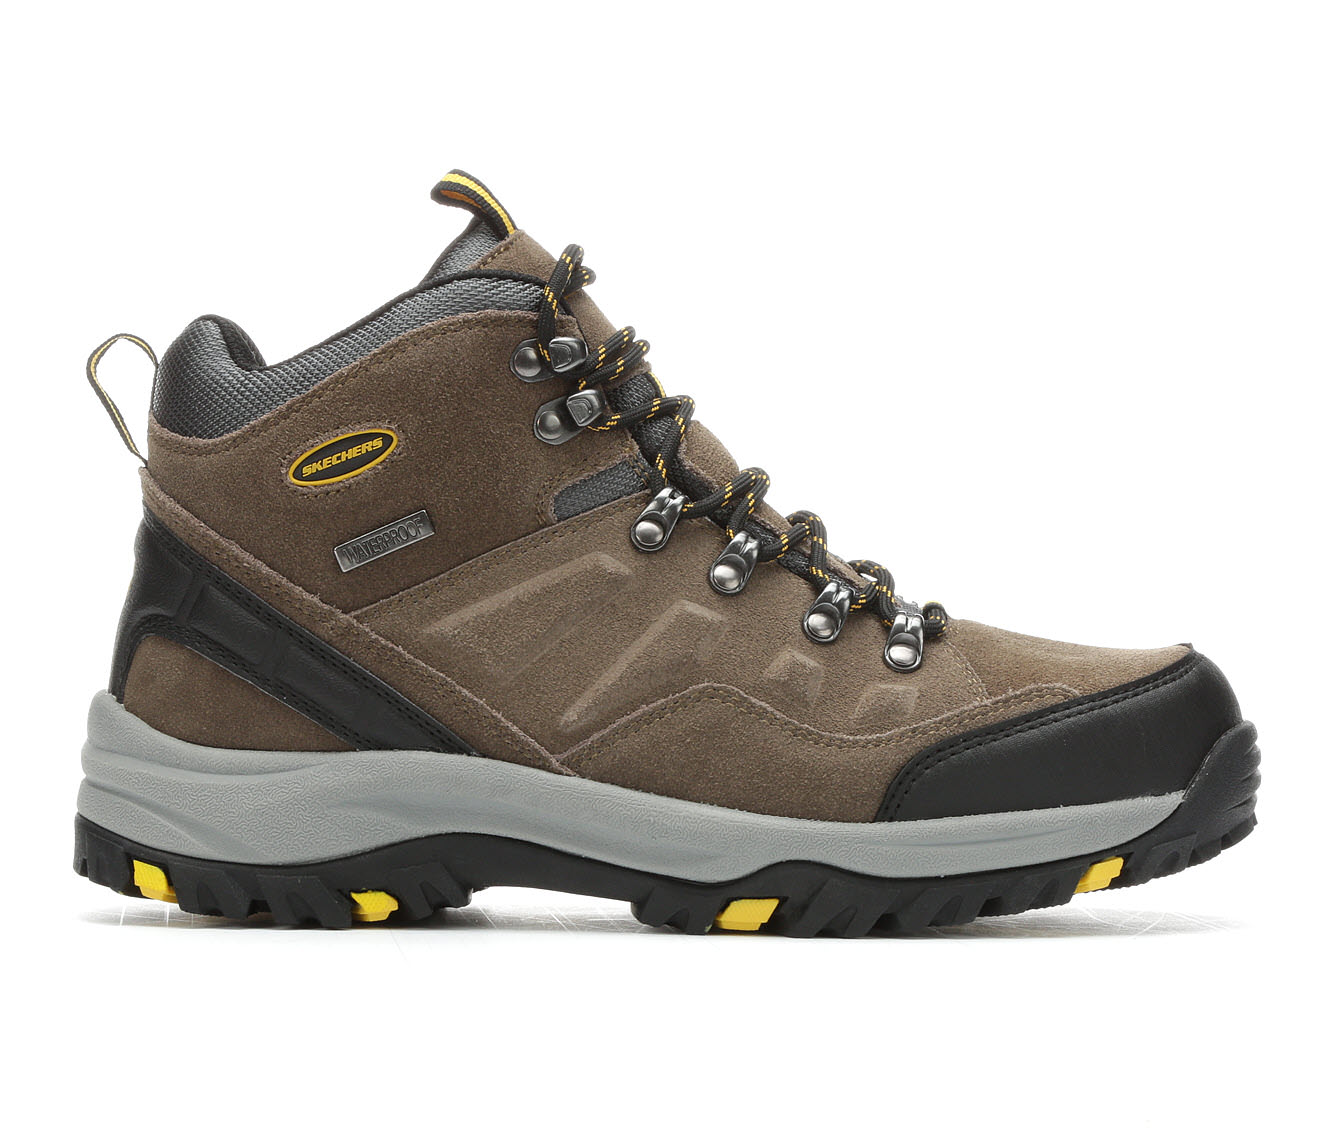 Skechers Pelmo 64869 Men's Boots (Brown Suede)